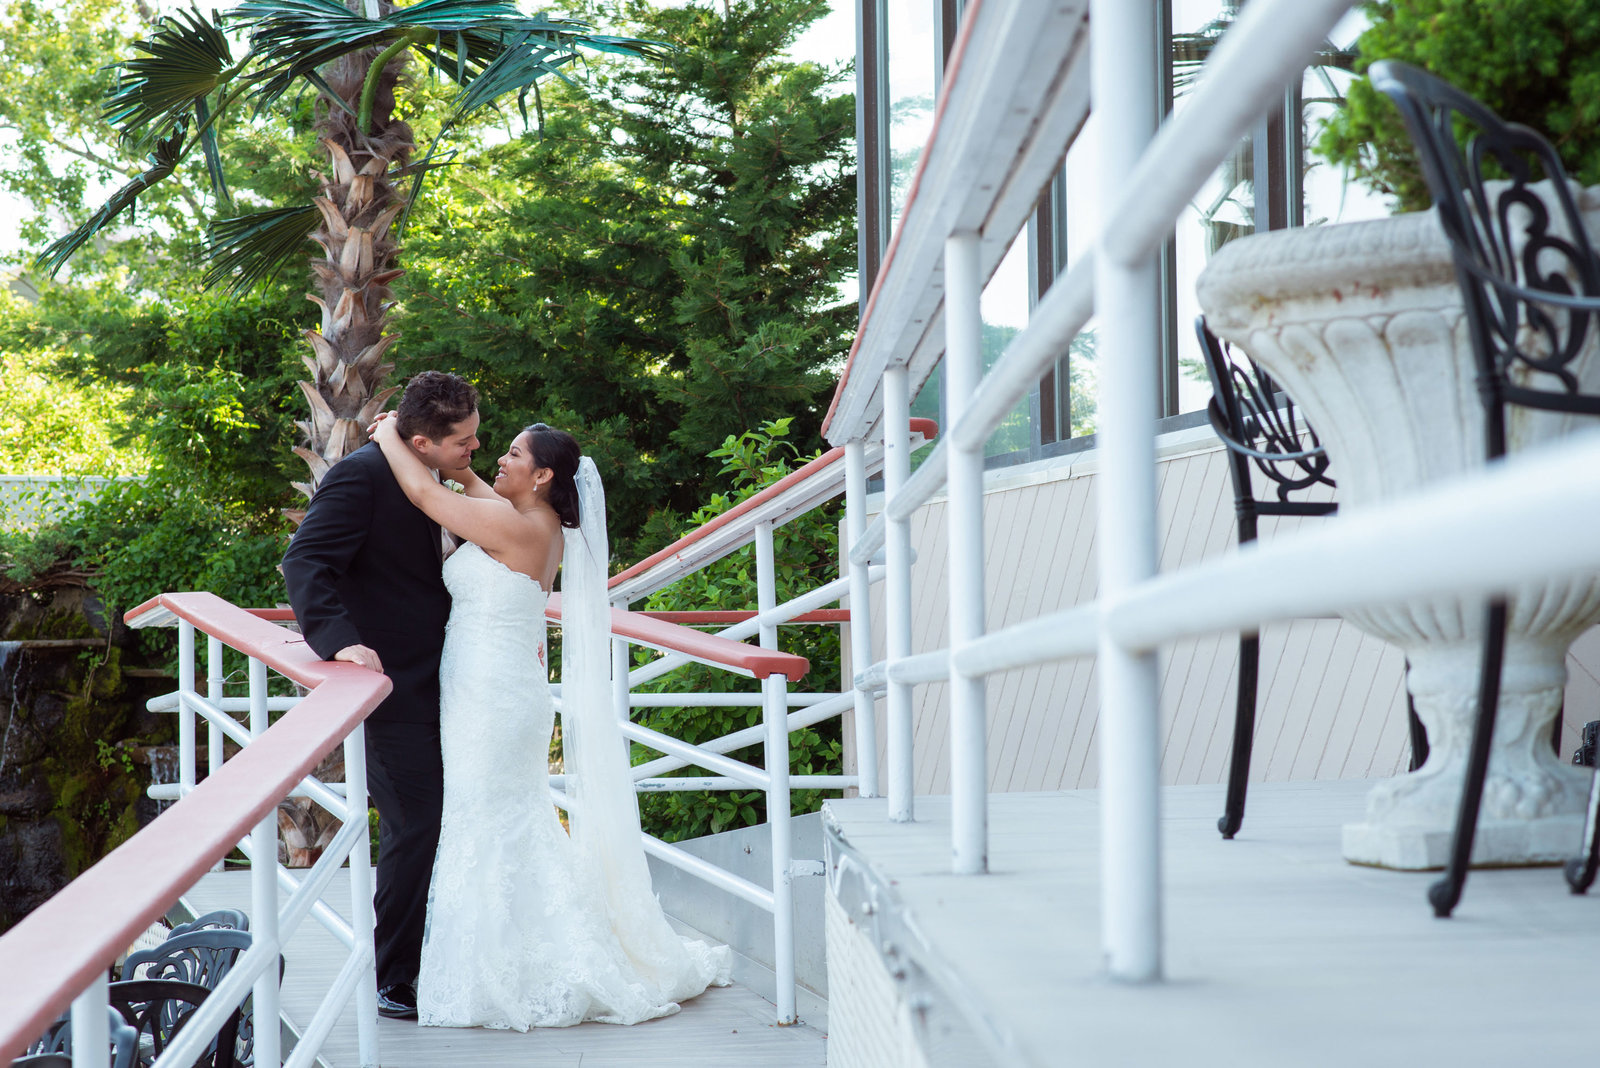 Bride and groom on ramp at Chateau La Mer